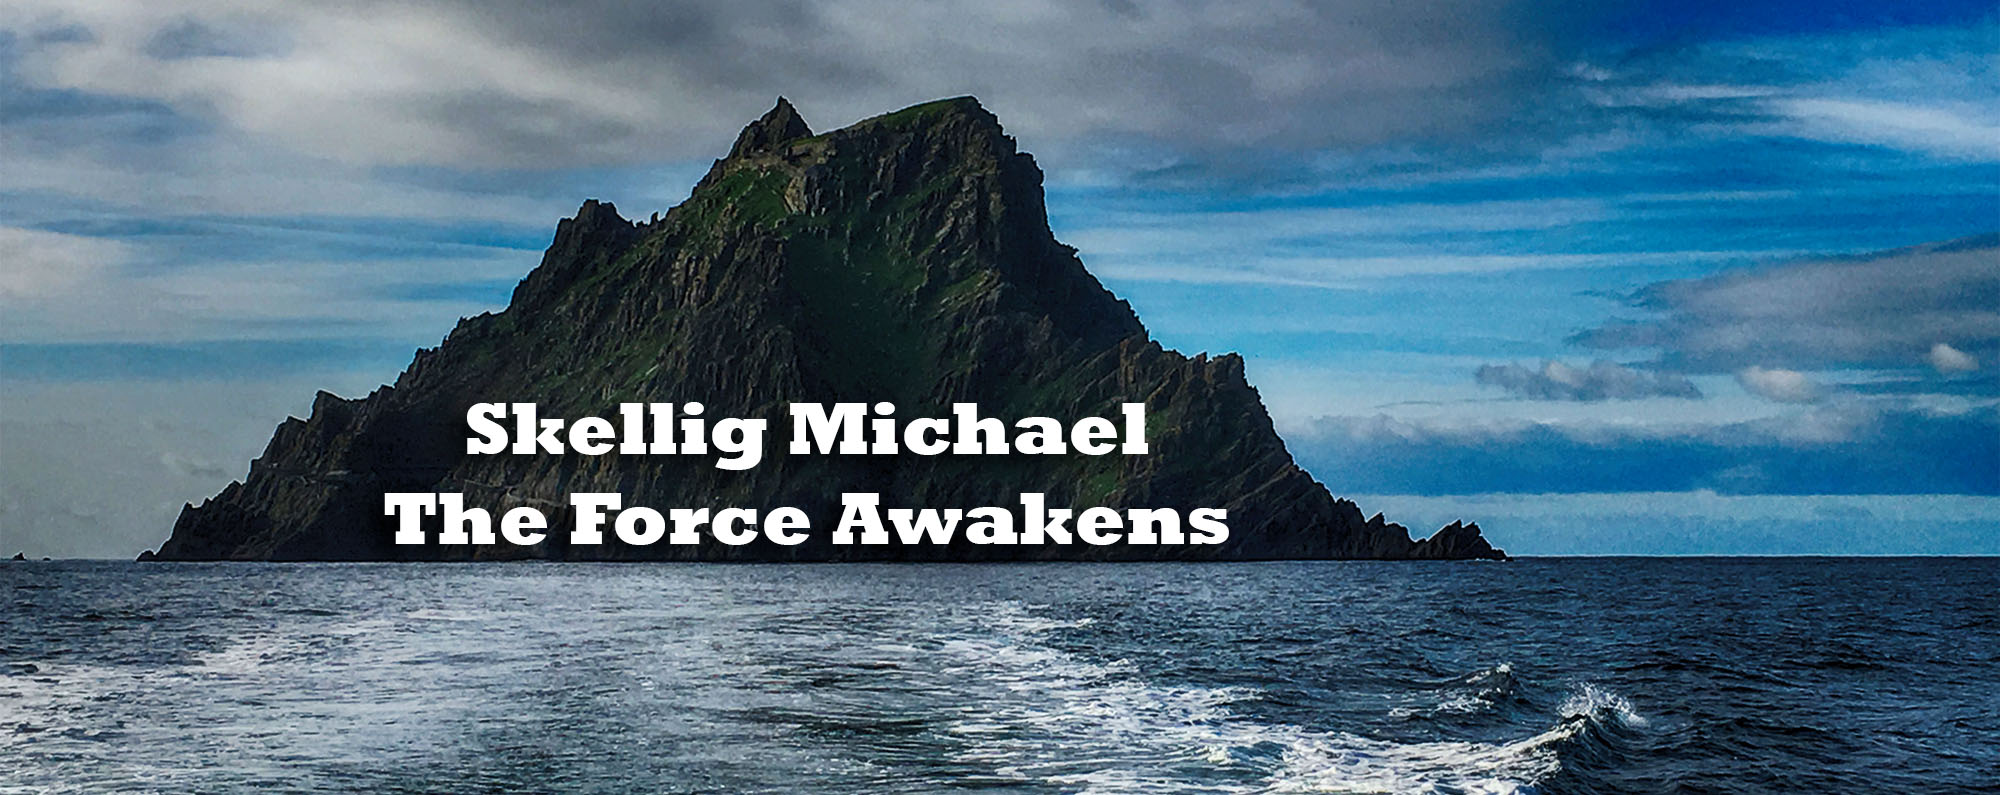 Skellig Michael The Force Awakens